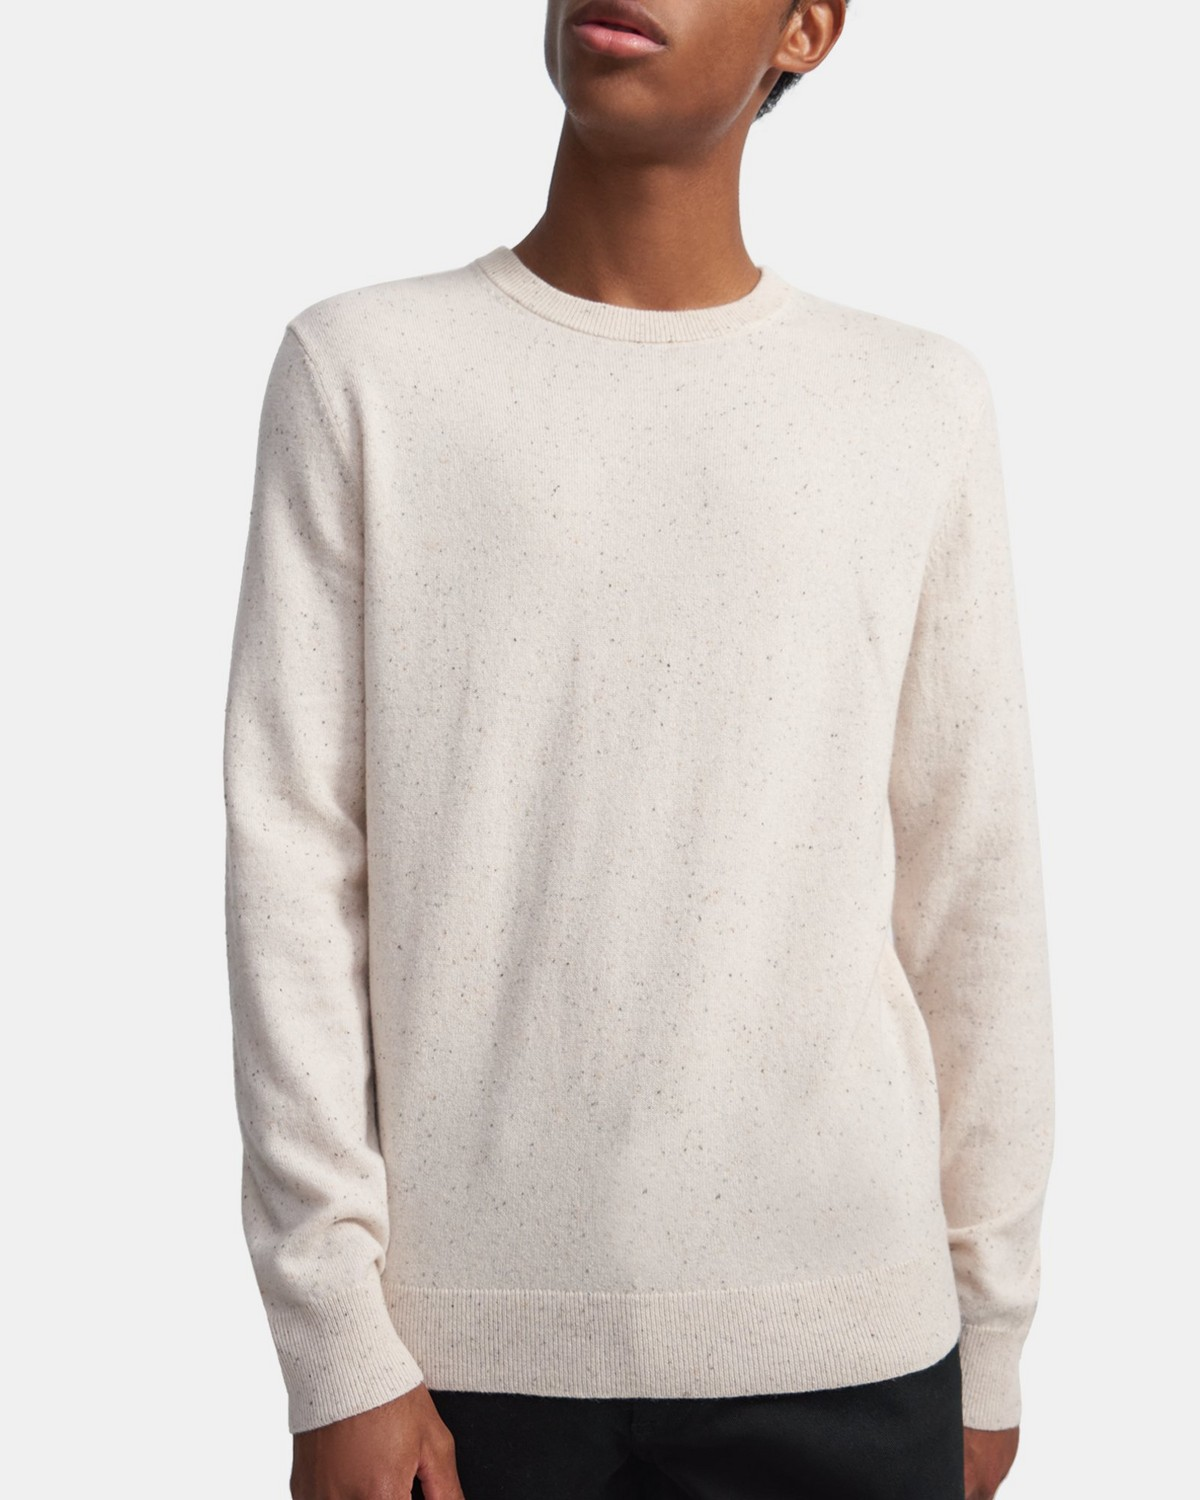 Crewneck Sweater in Donegal Cashmere